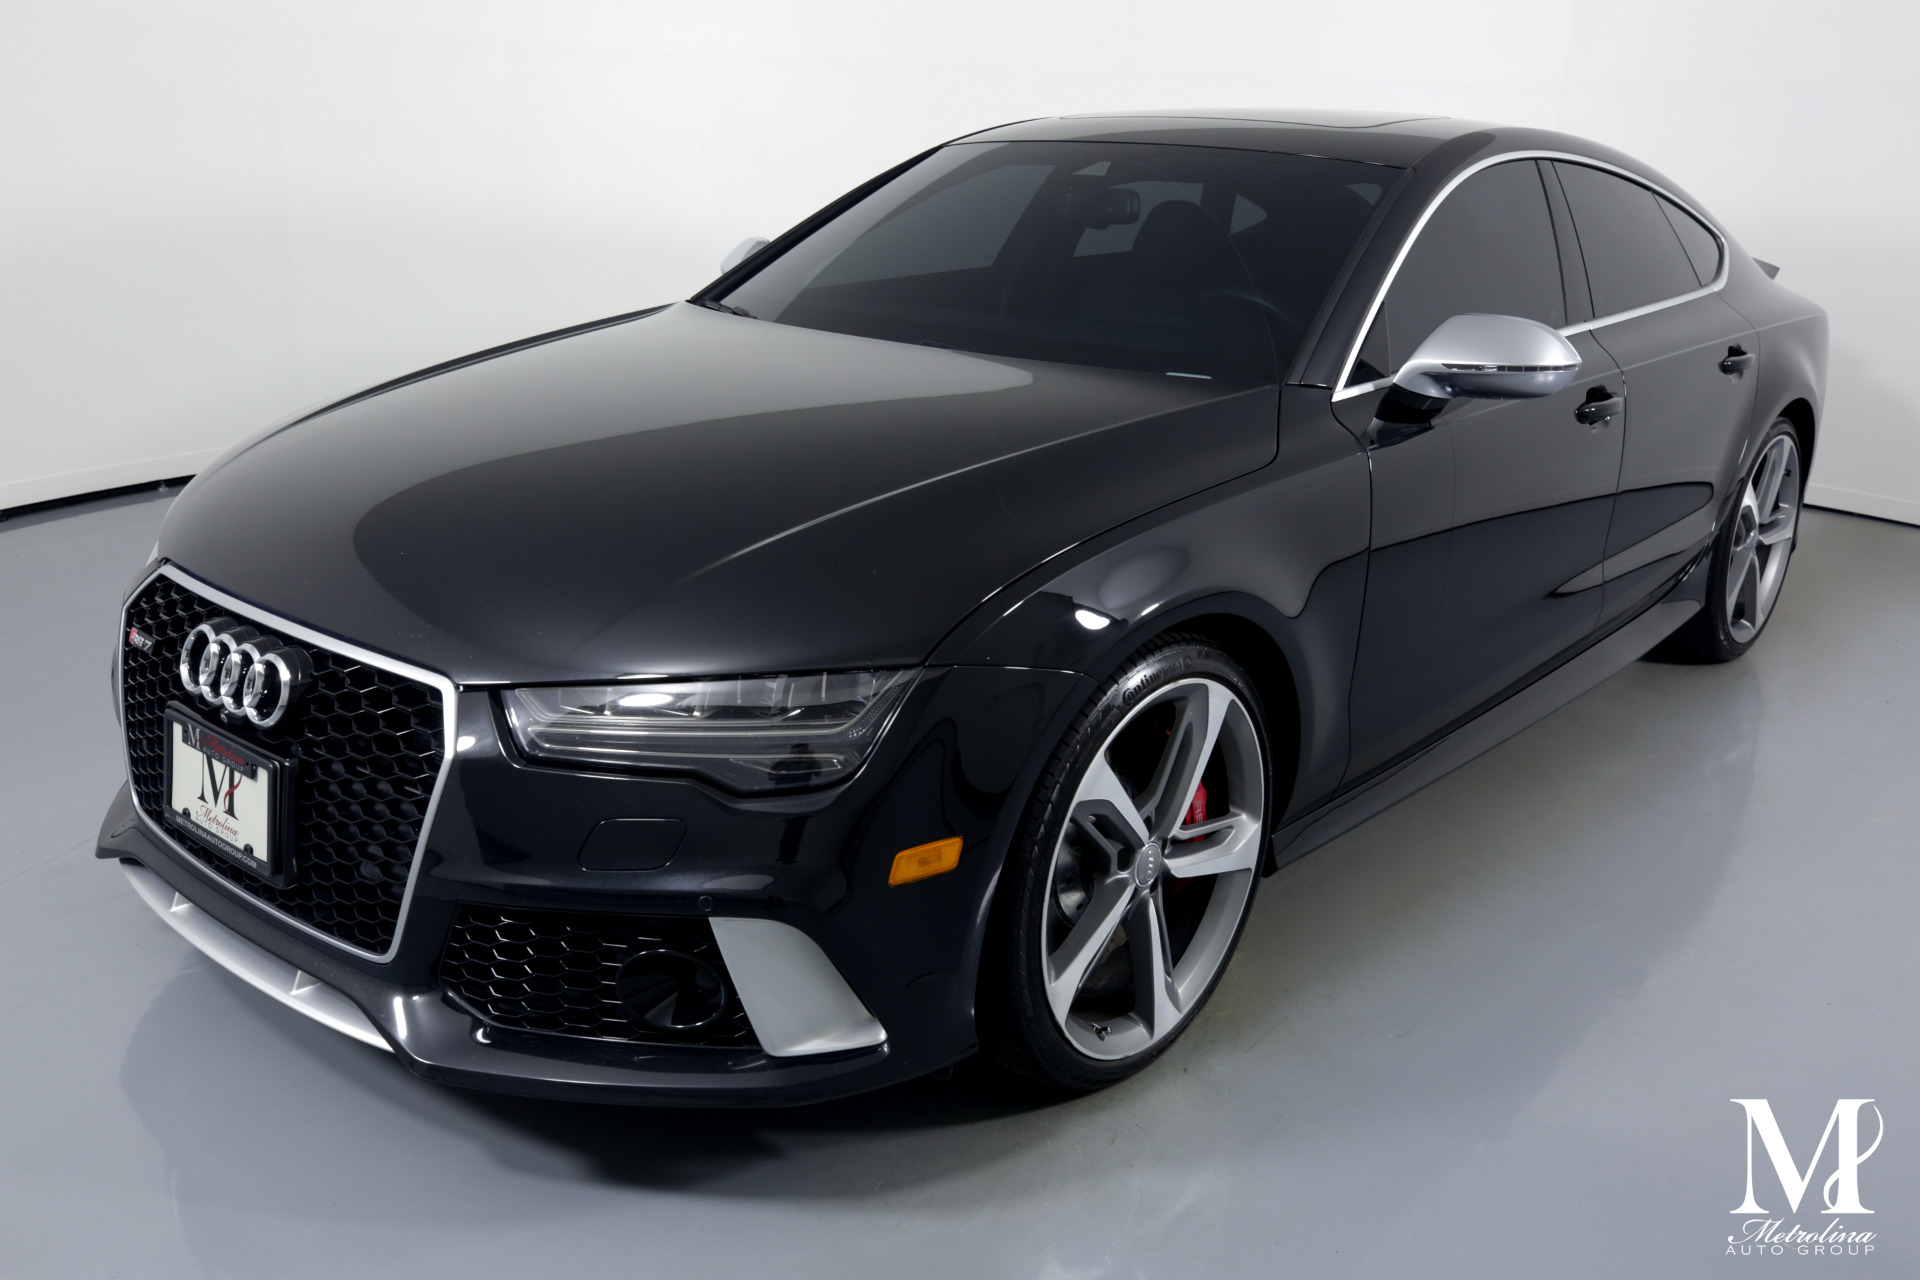 Used 2016 Audi RS 7 4.0T quattro Prestige for sale $68,456 at Metrolina Auto Group in Charlotte NC 28217 - 4